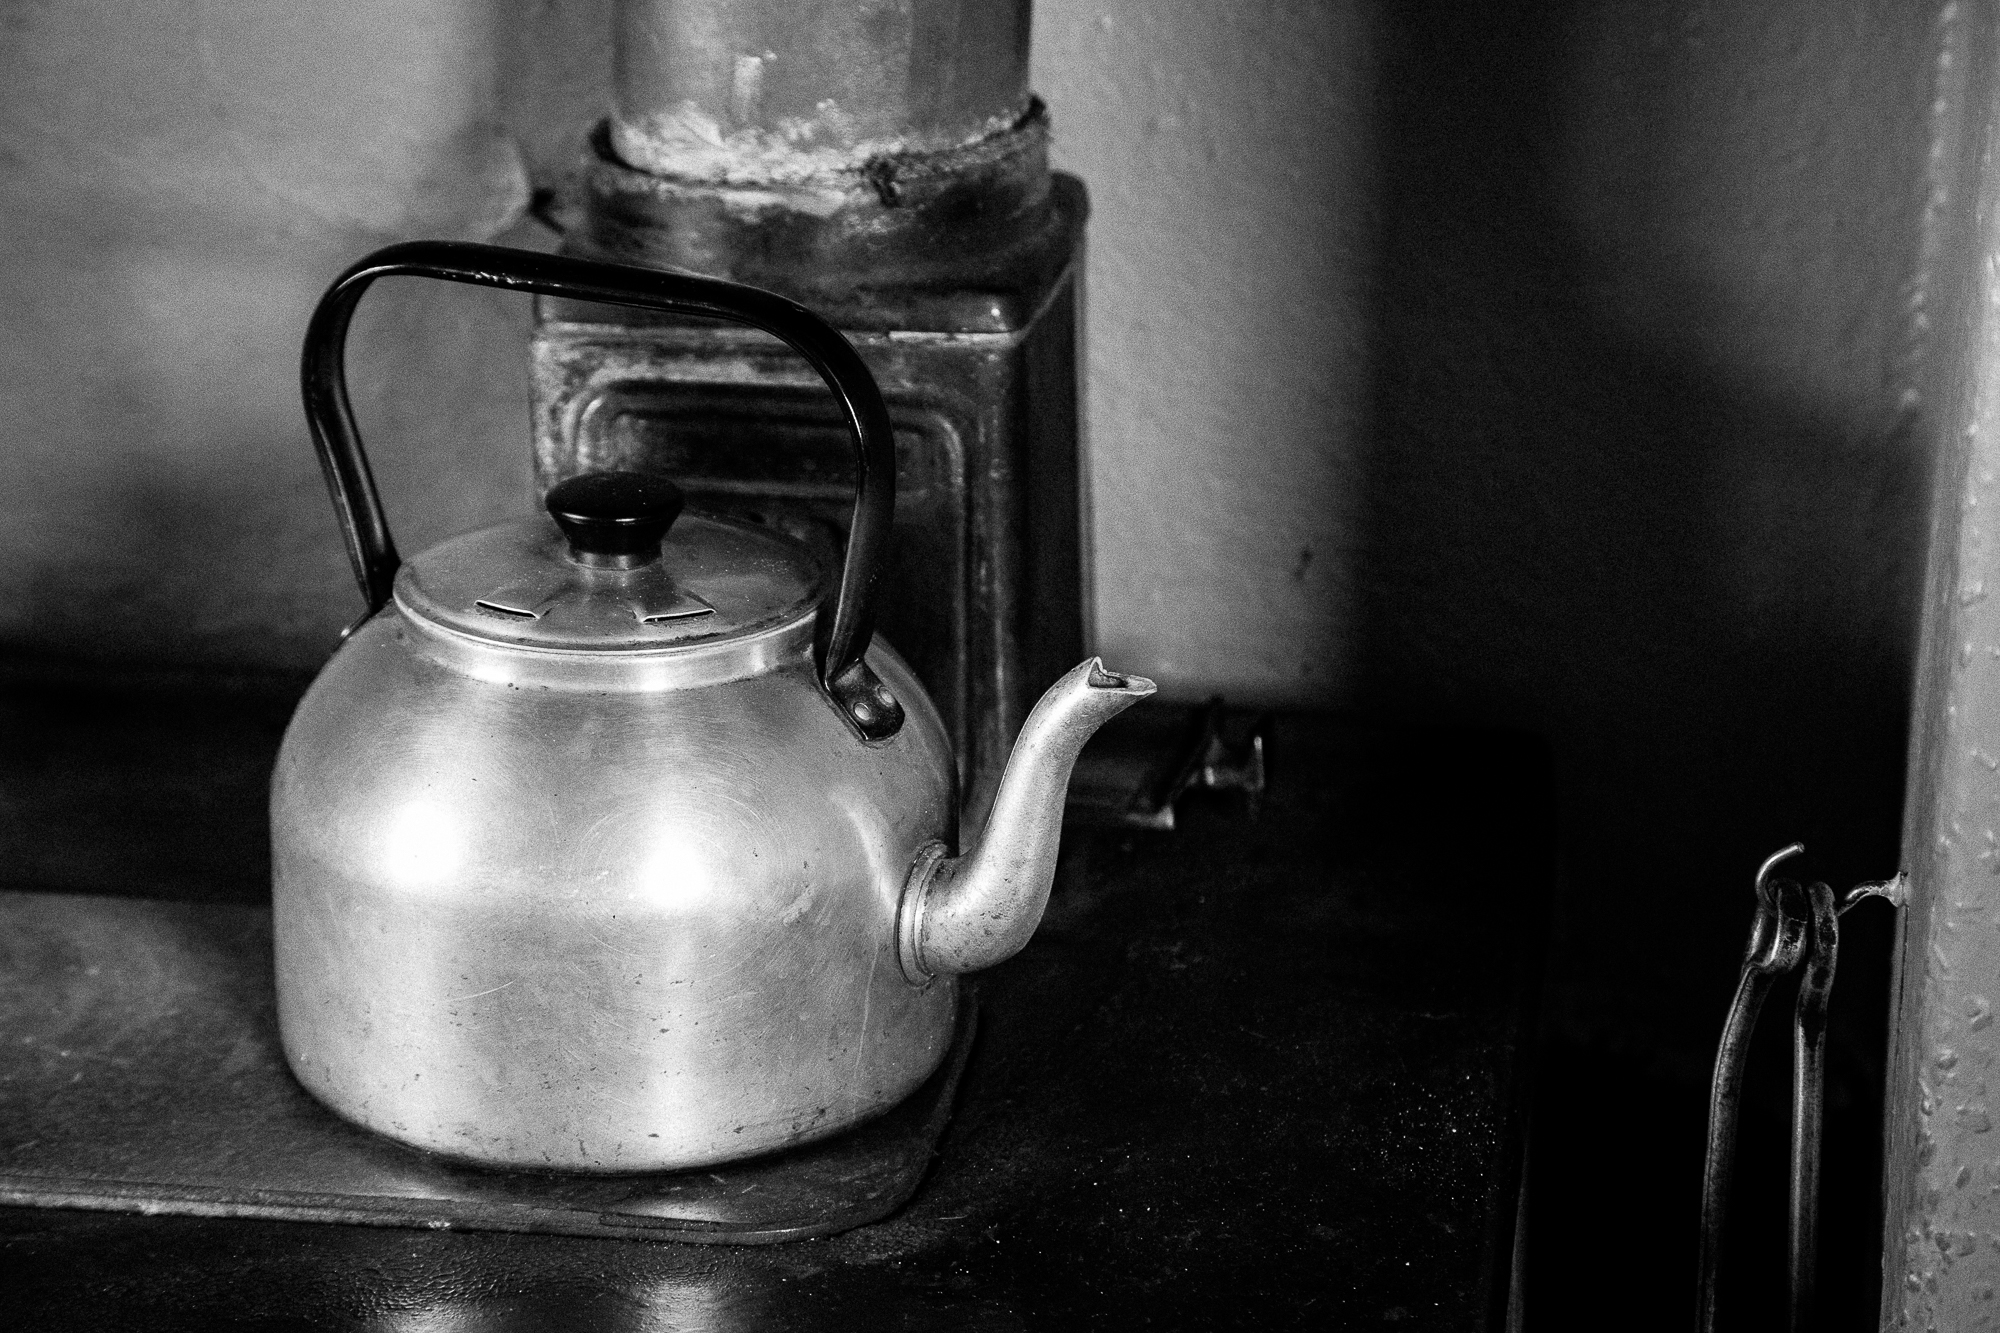 An old beloved kettle still pouring hot water to make a perfect cuppa